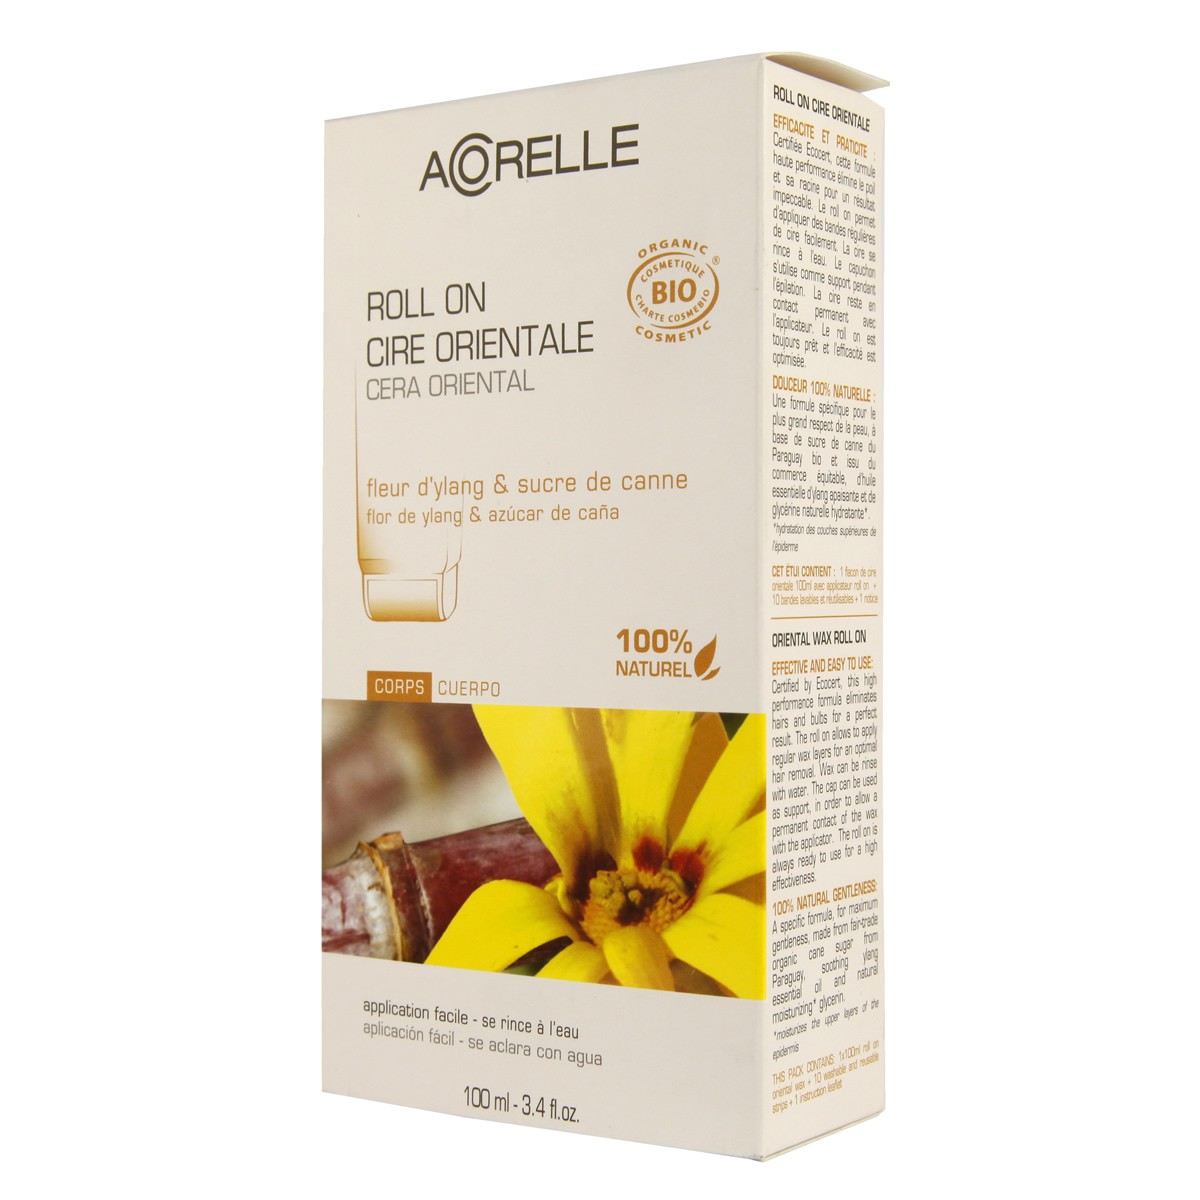 Acorelle Skin Care Oriental Roll-on Wax with Strips - Ylang Flower & Cane Sugar